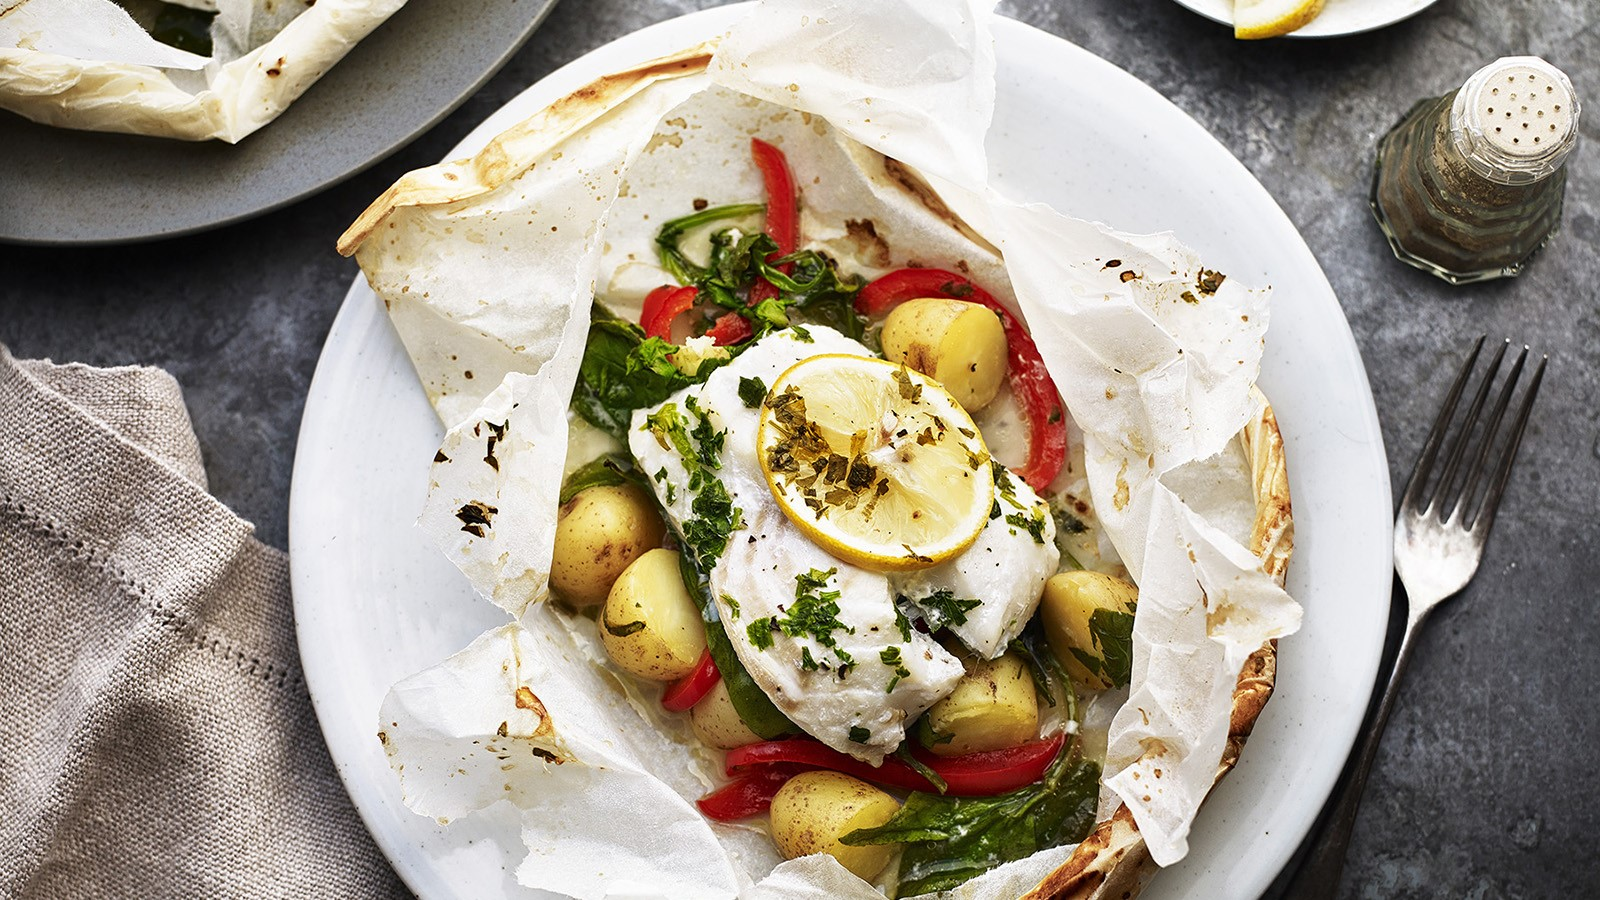 New Potatoes and Cod En Papillote